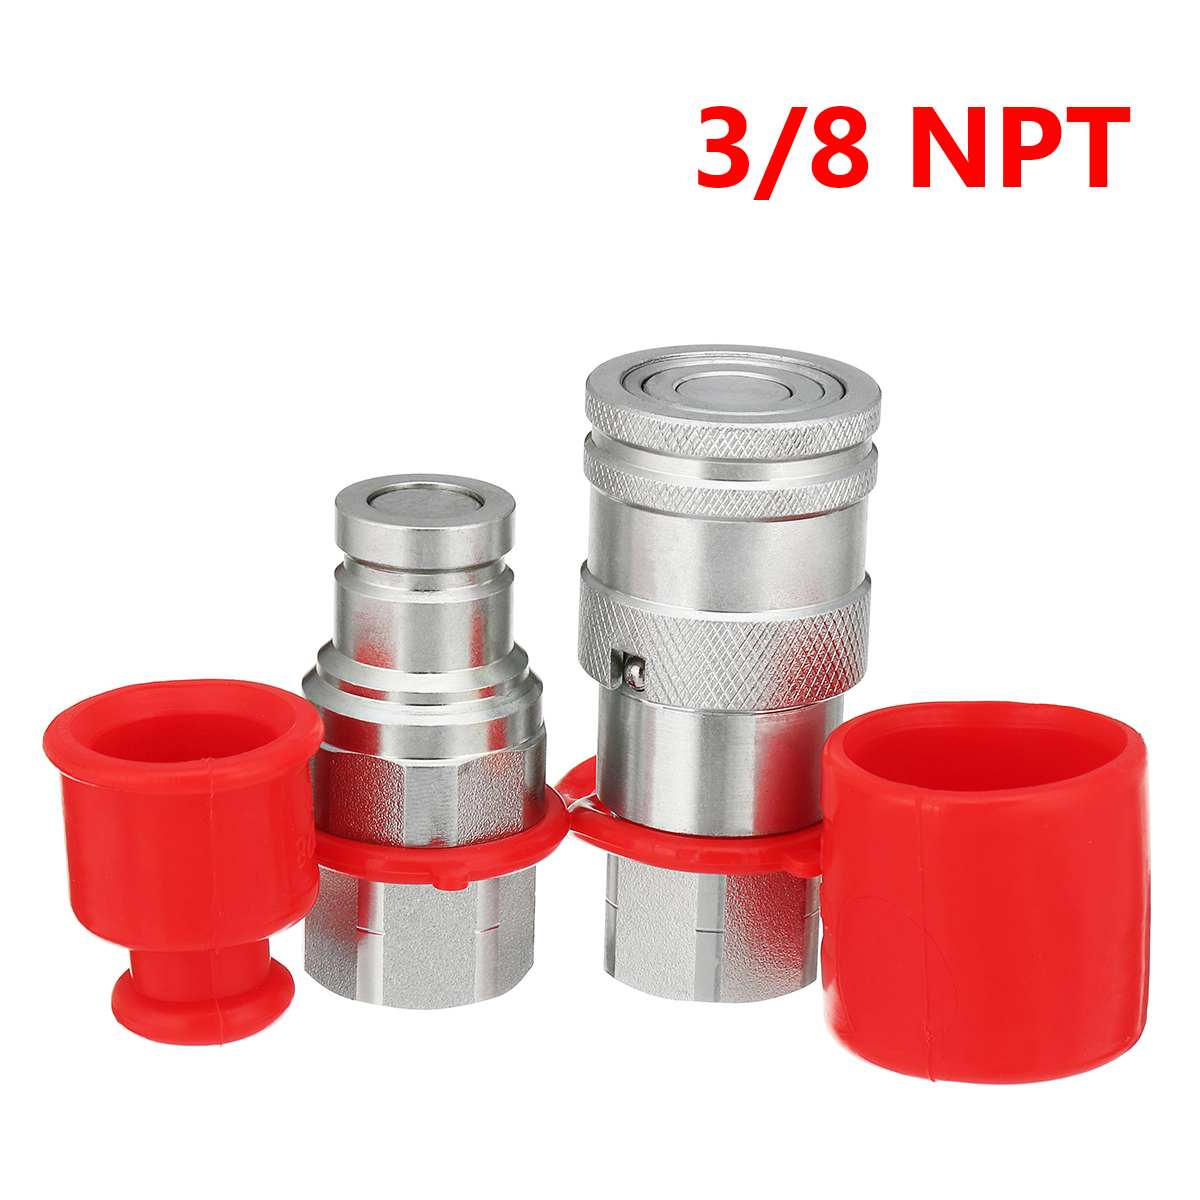 3/8 Inch NPT Face Hydraulic Male / Female Quick Connect Adapter Coupler Coupling Set for ISO16028 with PVC Protective Cover3/8 Inch NPT Face Hydraulic Male / Female Quick Connect Adapter Coupler Coupling Set for ISO16028 with PVC Protective Cover